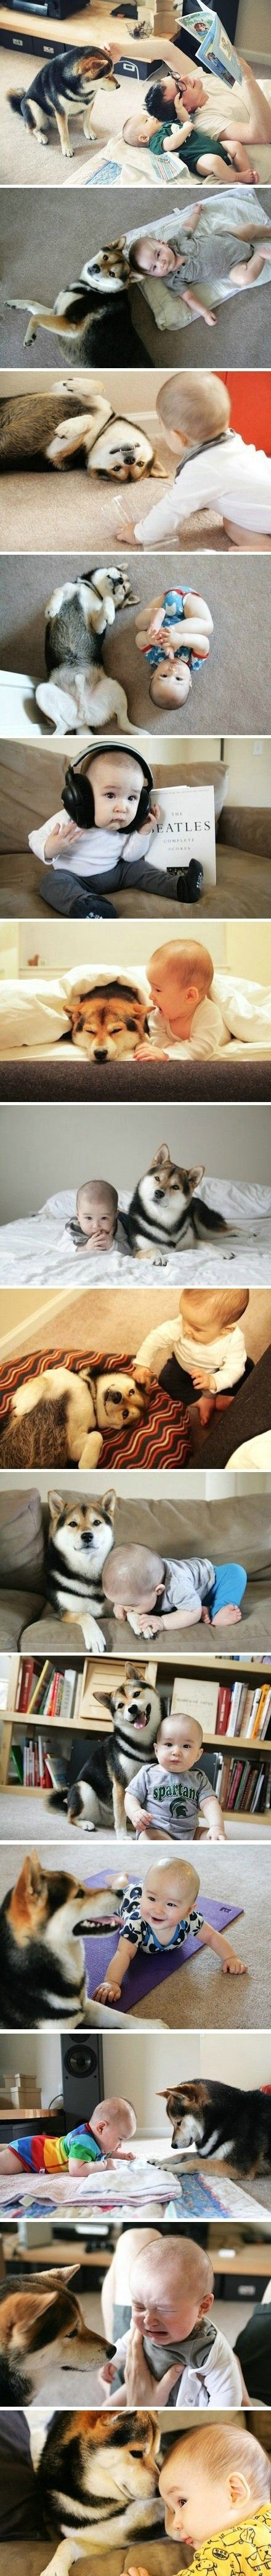 FRIENDPuppies, Shiba Inu, Best Friends, Bestfriends, Future Baby, Baby Dogs, Kids, Animal, Dogs Baby